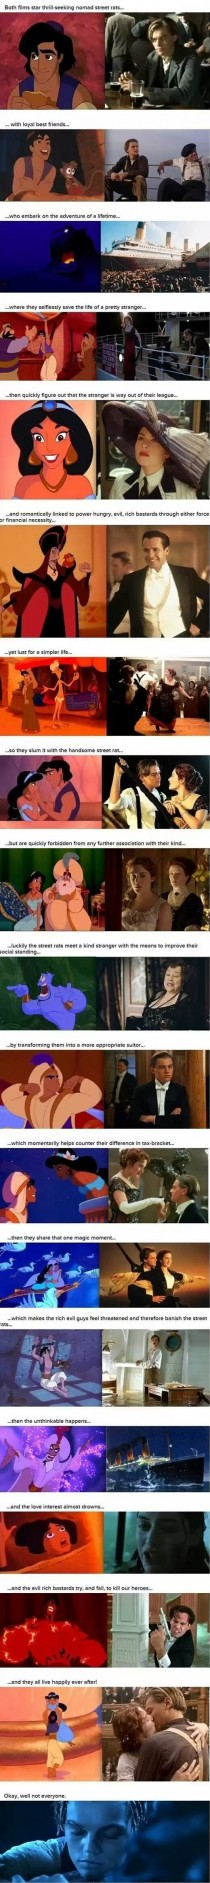 Proof that Aladdin and Titanic are basically the same movie